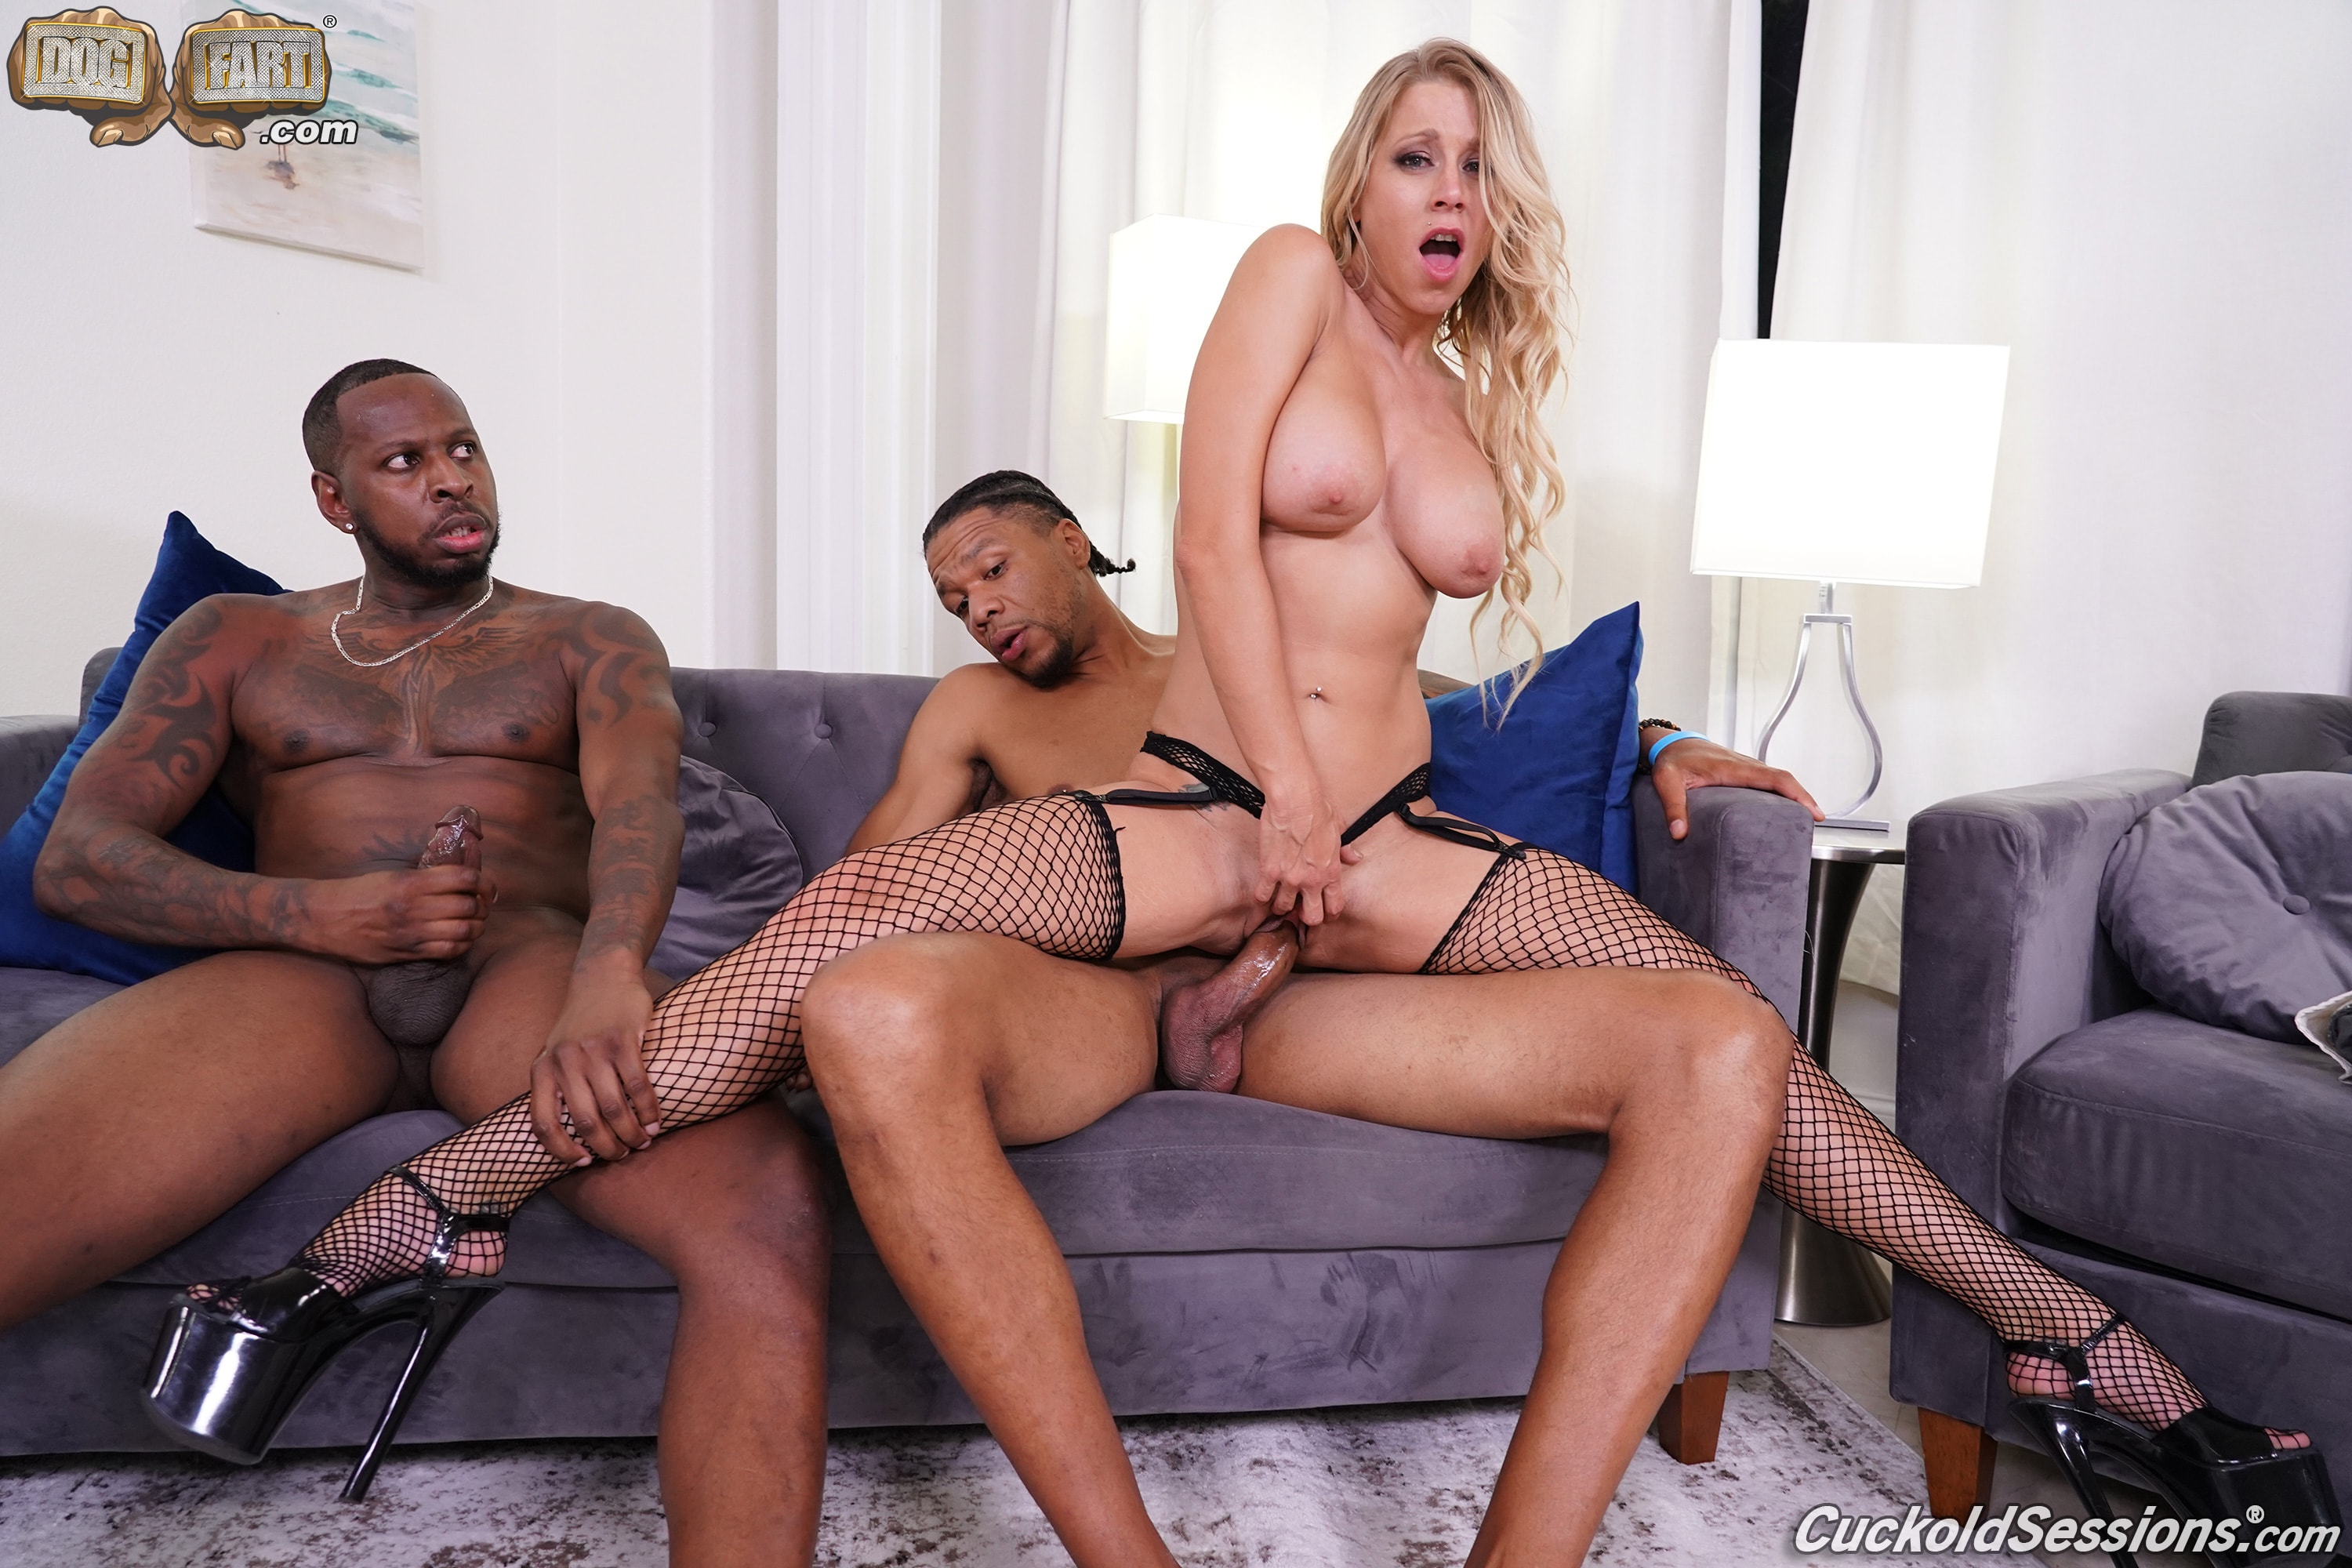 Dogfart '- Cuckold Sessions - Scene 2' starring Katie Morgan (Photo 26)